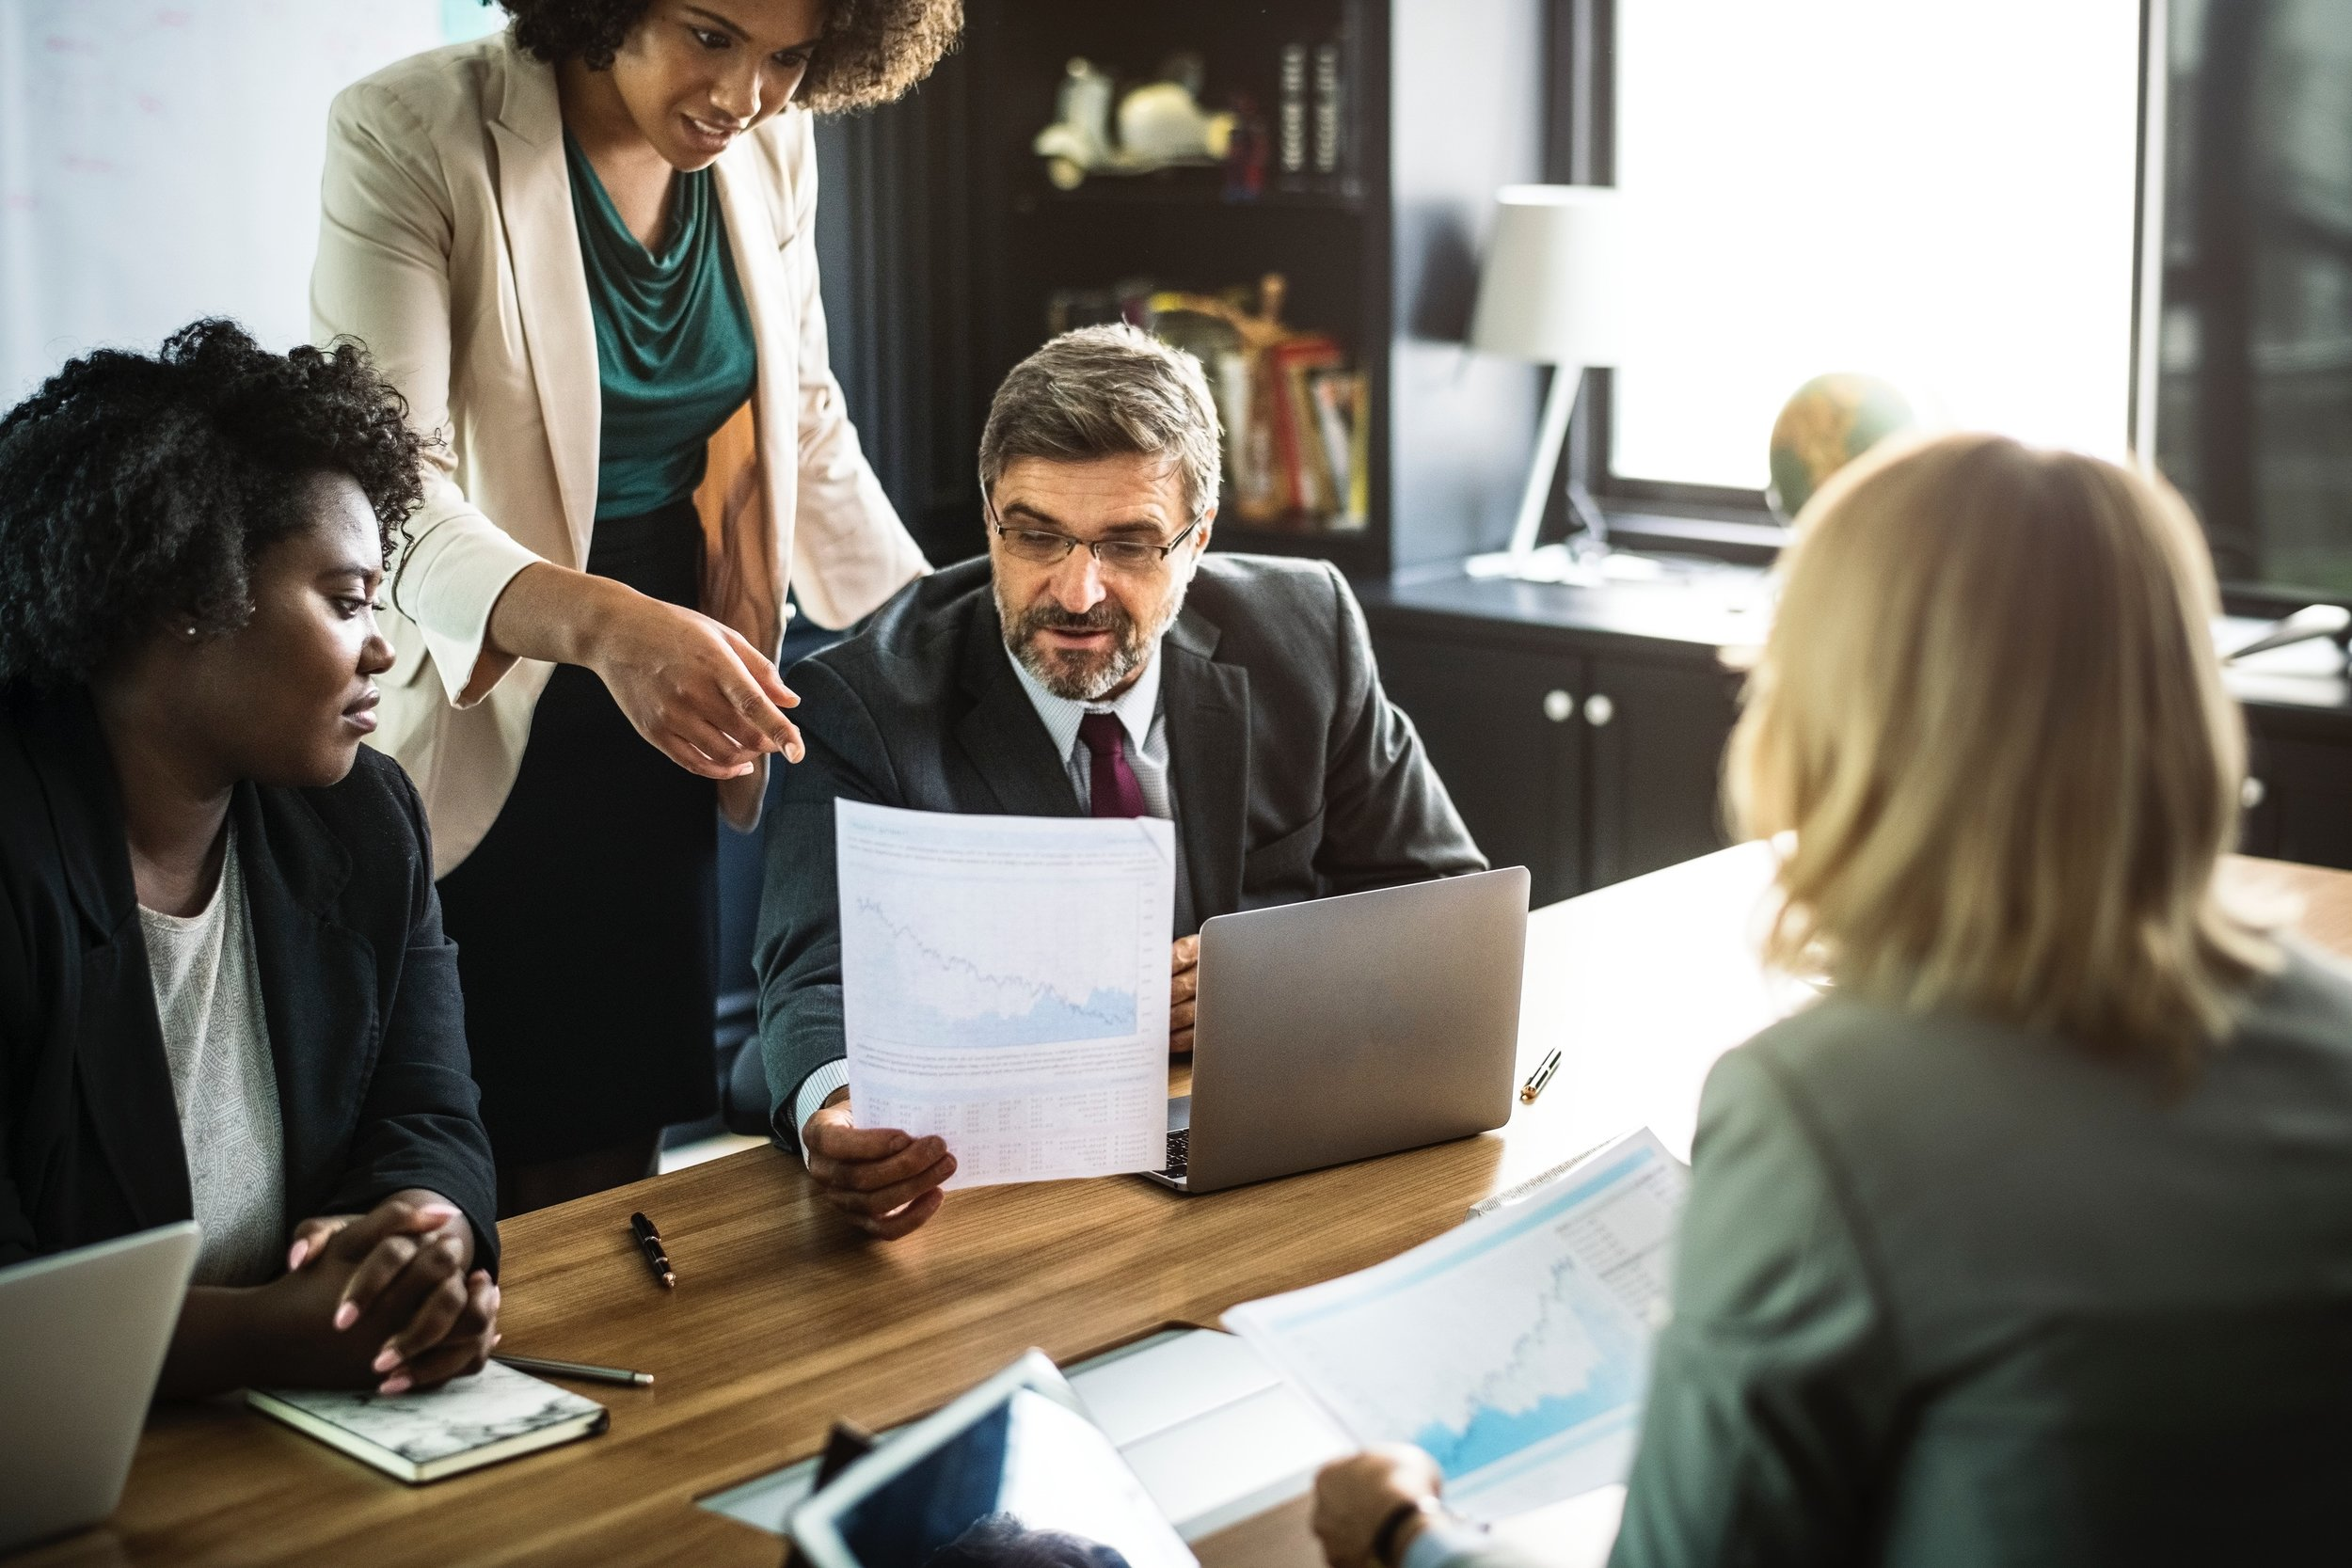 BUSINESS ADVISORY & CONSULTING SERVICES - Our team can address specific questions or projects with your firm, designing & operating repeatable business solutions, specific best practice concerns, and other services.